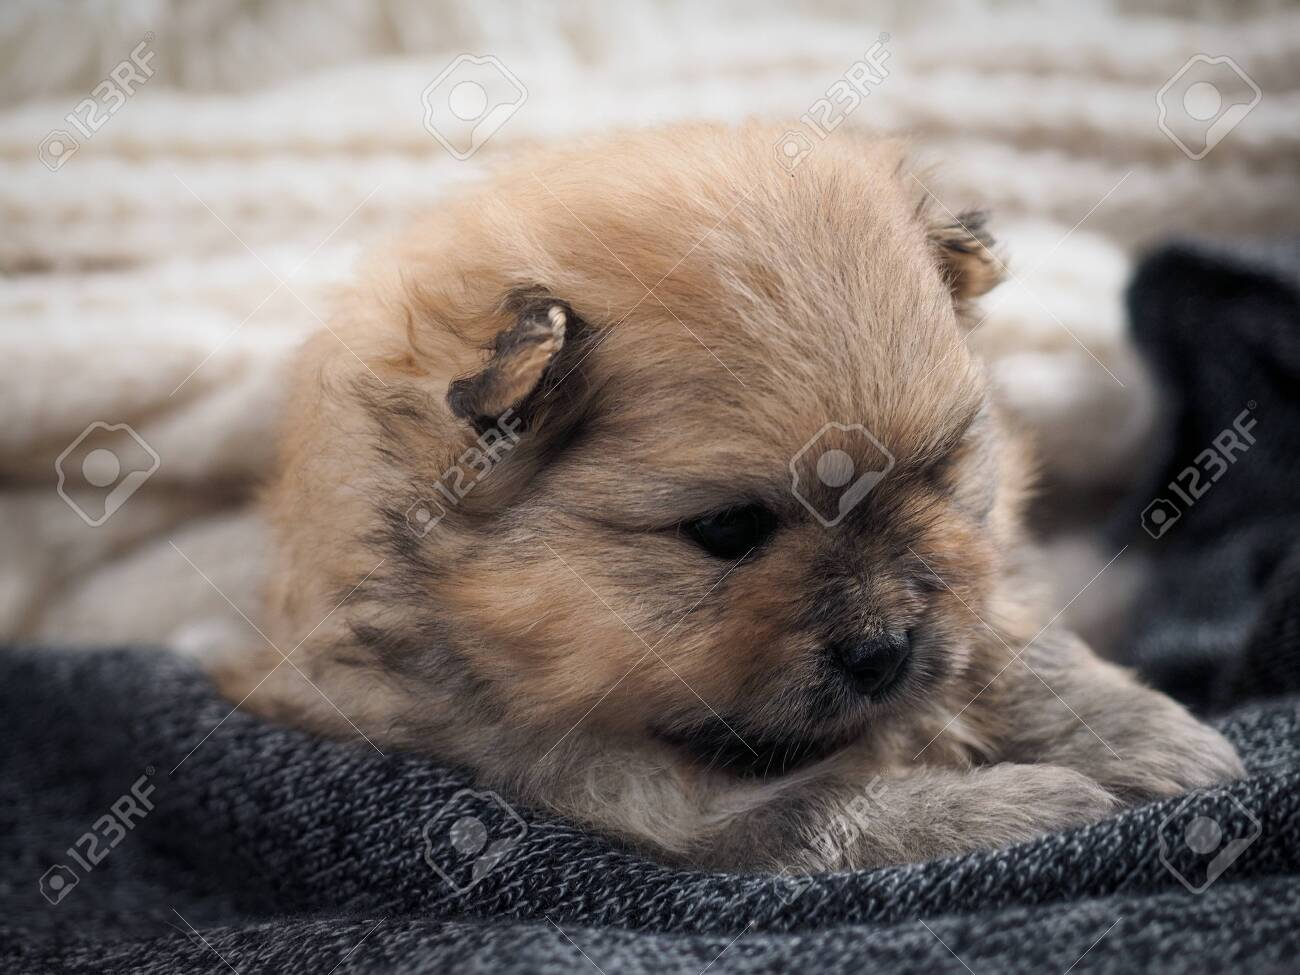 Portrait Of A Cute Puppy Fluffy Dog Pomeranian Breed Stock Photo Picture And Royalty Free Image Image 139232461